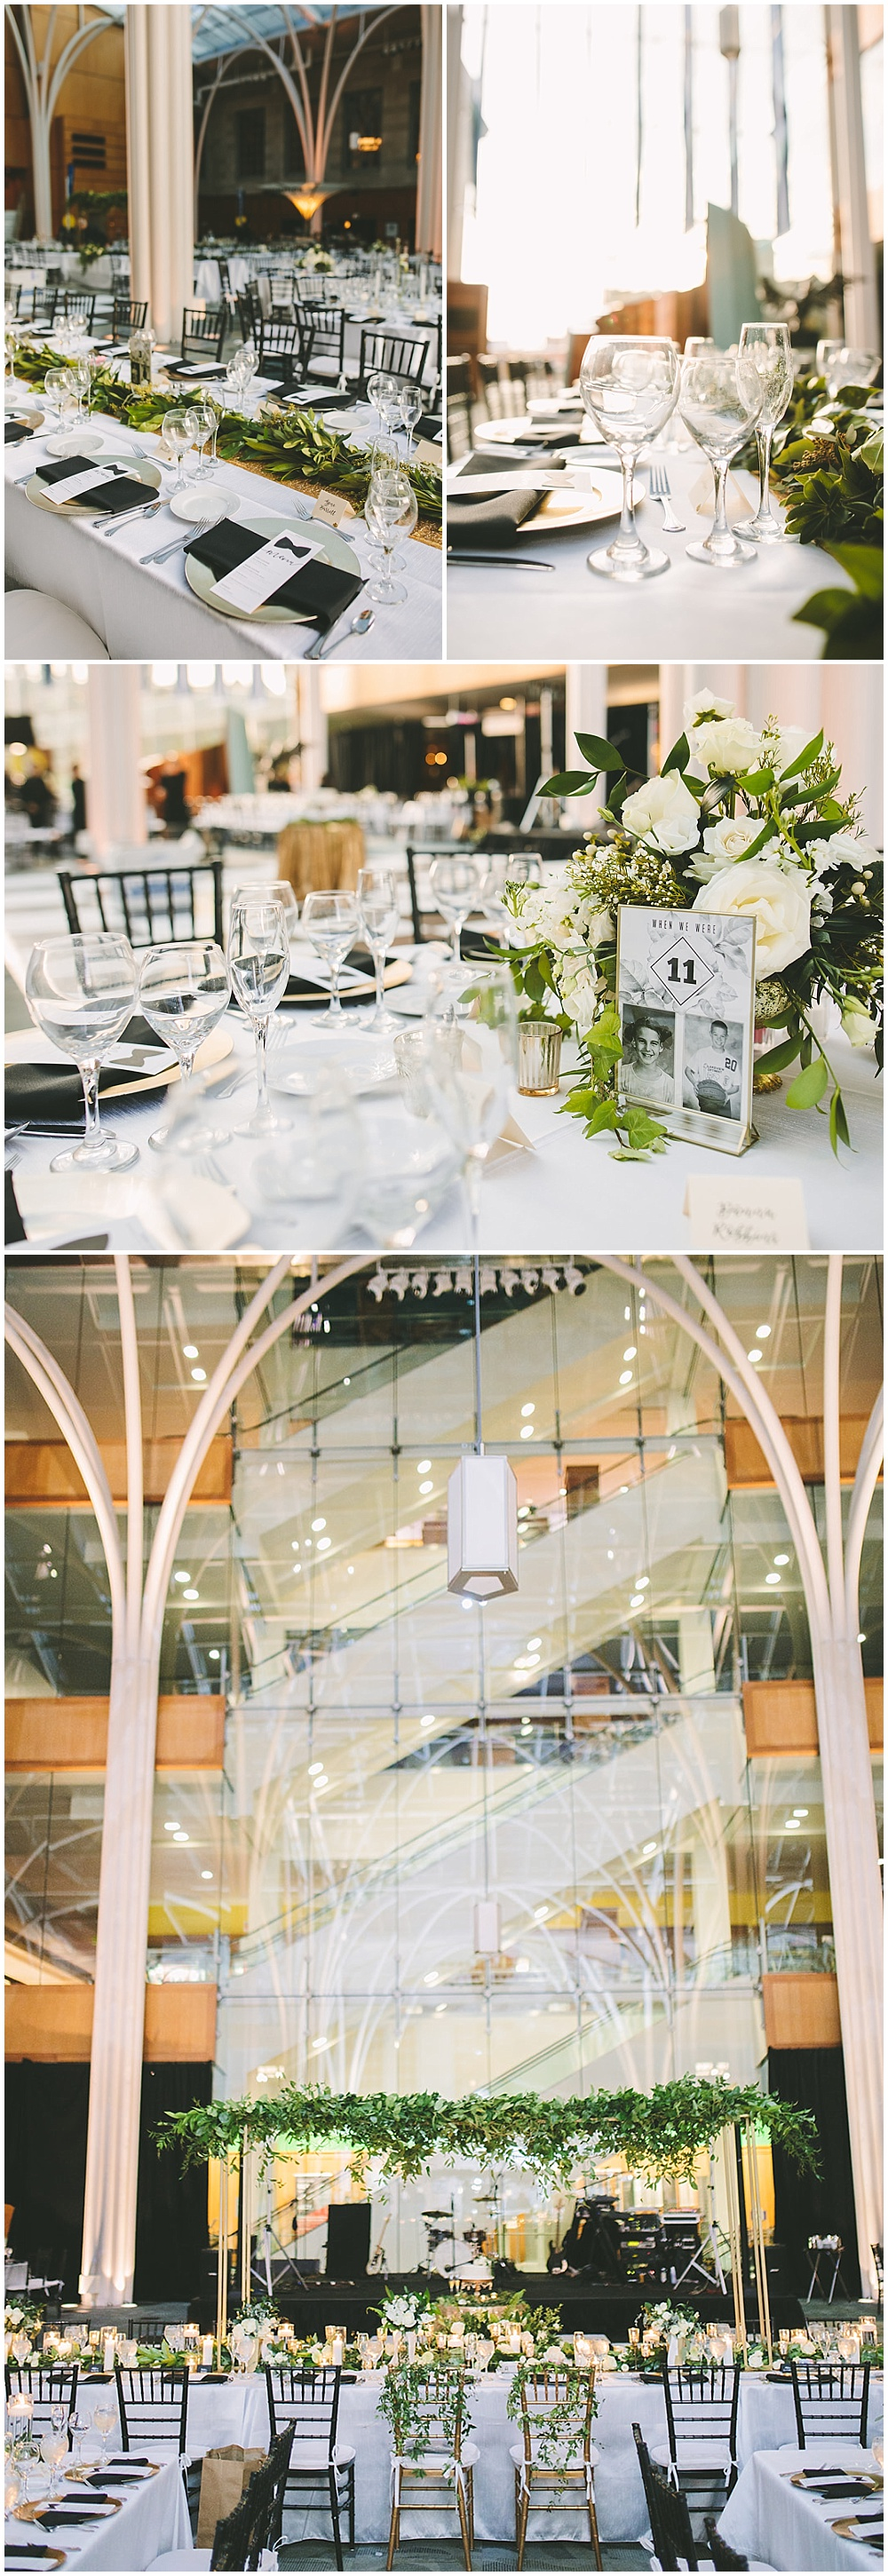 A timeless, modern wedding celebration at the Indianapolis Public Library. A black and white wedding with gold accents, suspended greenery above the reception tablescapes, and bow tie menus. | Jessica Dum Wedding Coordination